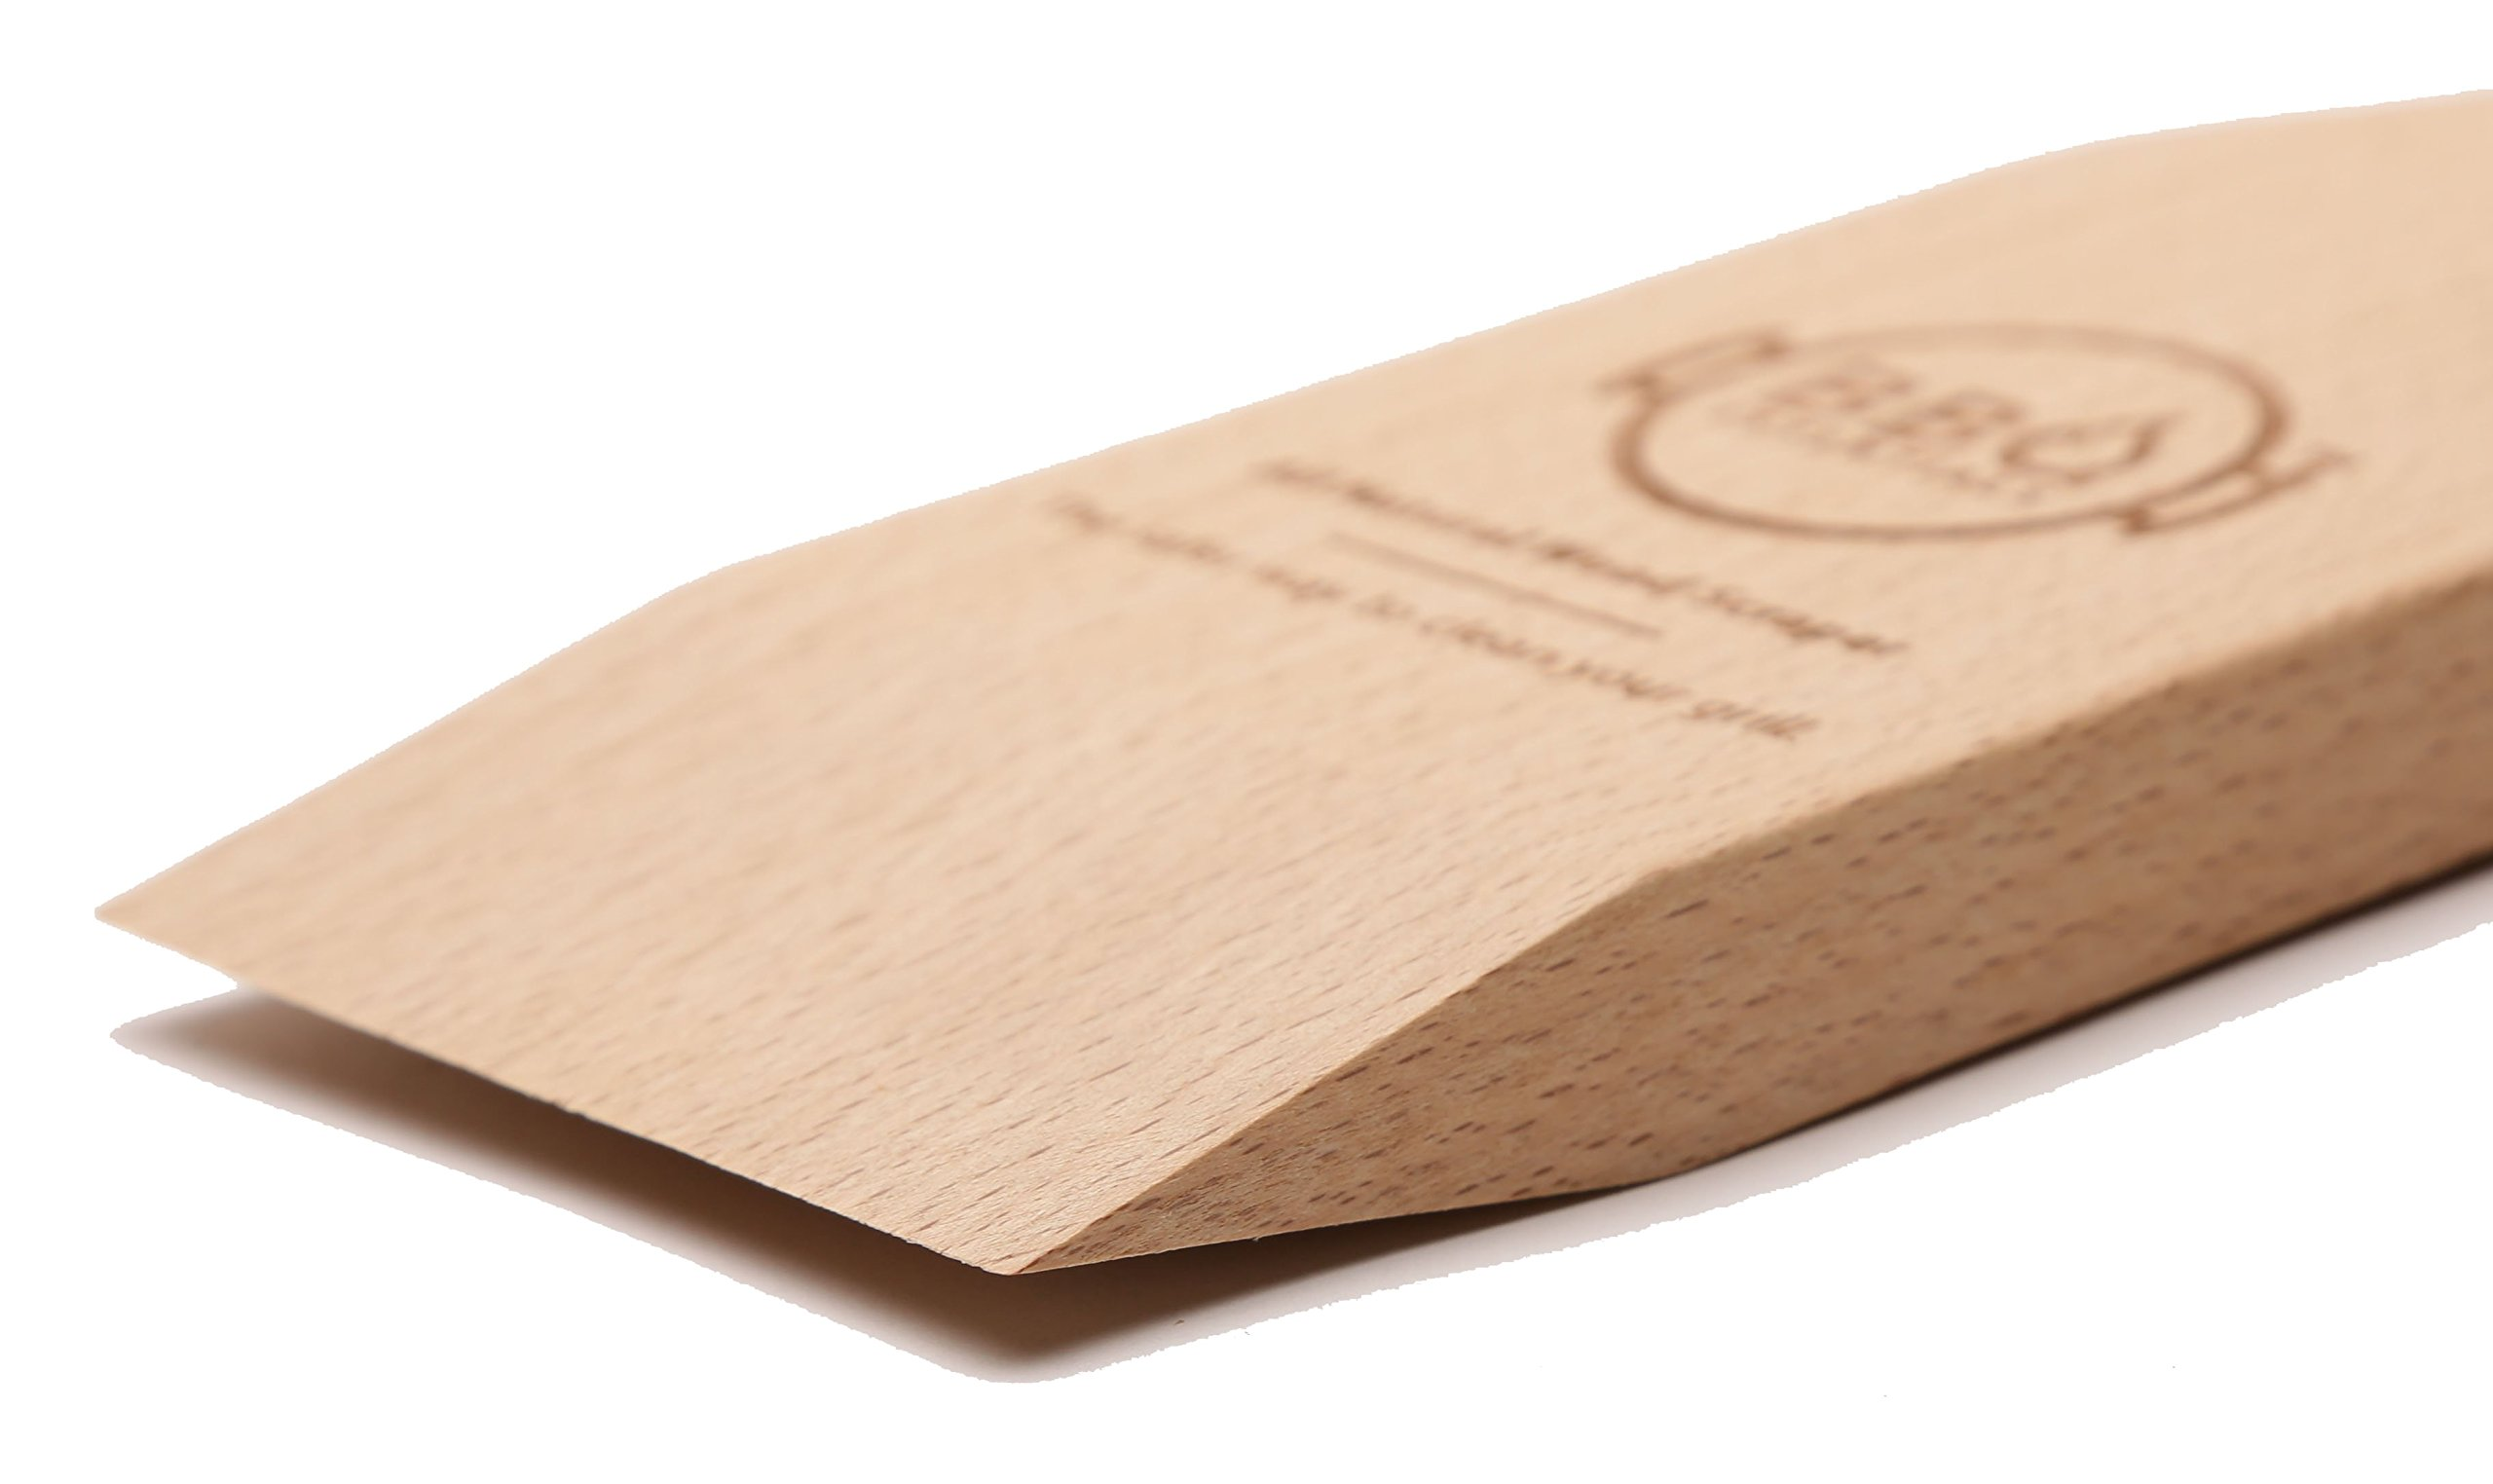 BBQ Essentials All Natural Wood Scraper - Safe, Small, Sustainable Solution to Grill Cleaning by BBQ Essentials (Image #4)